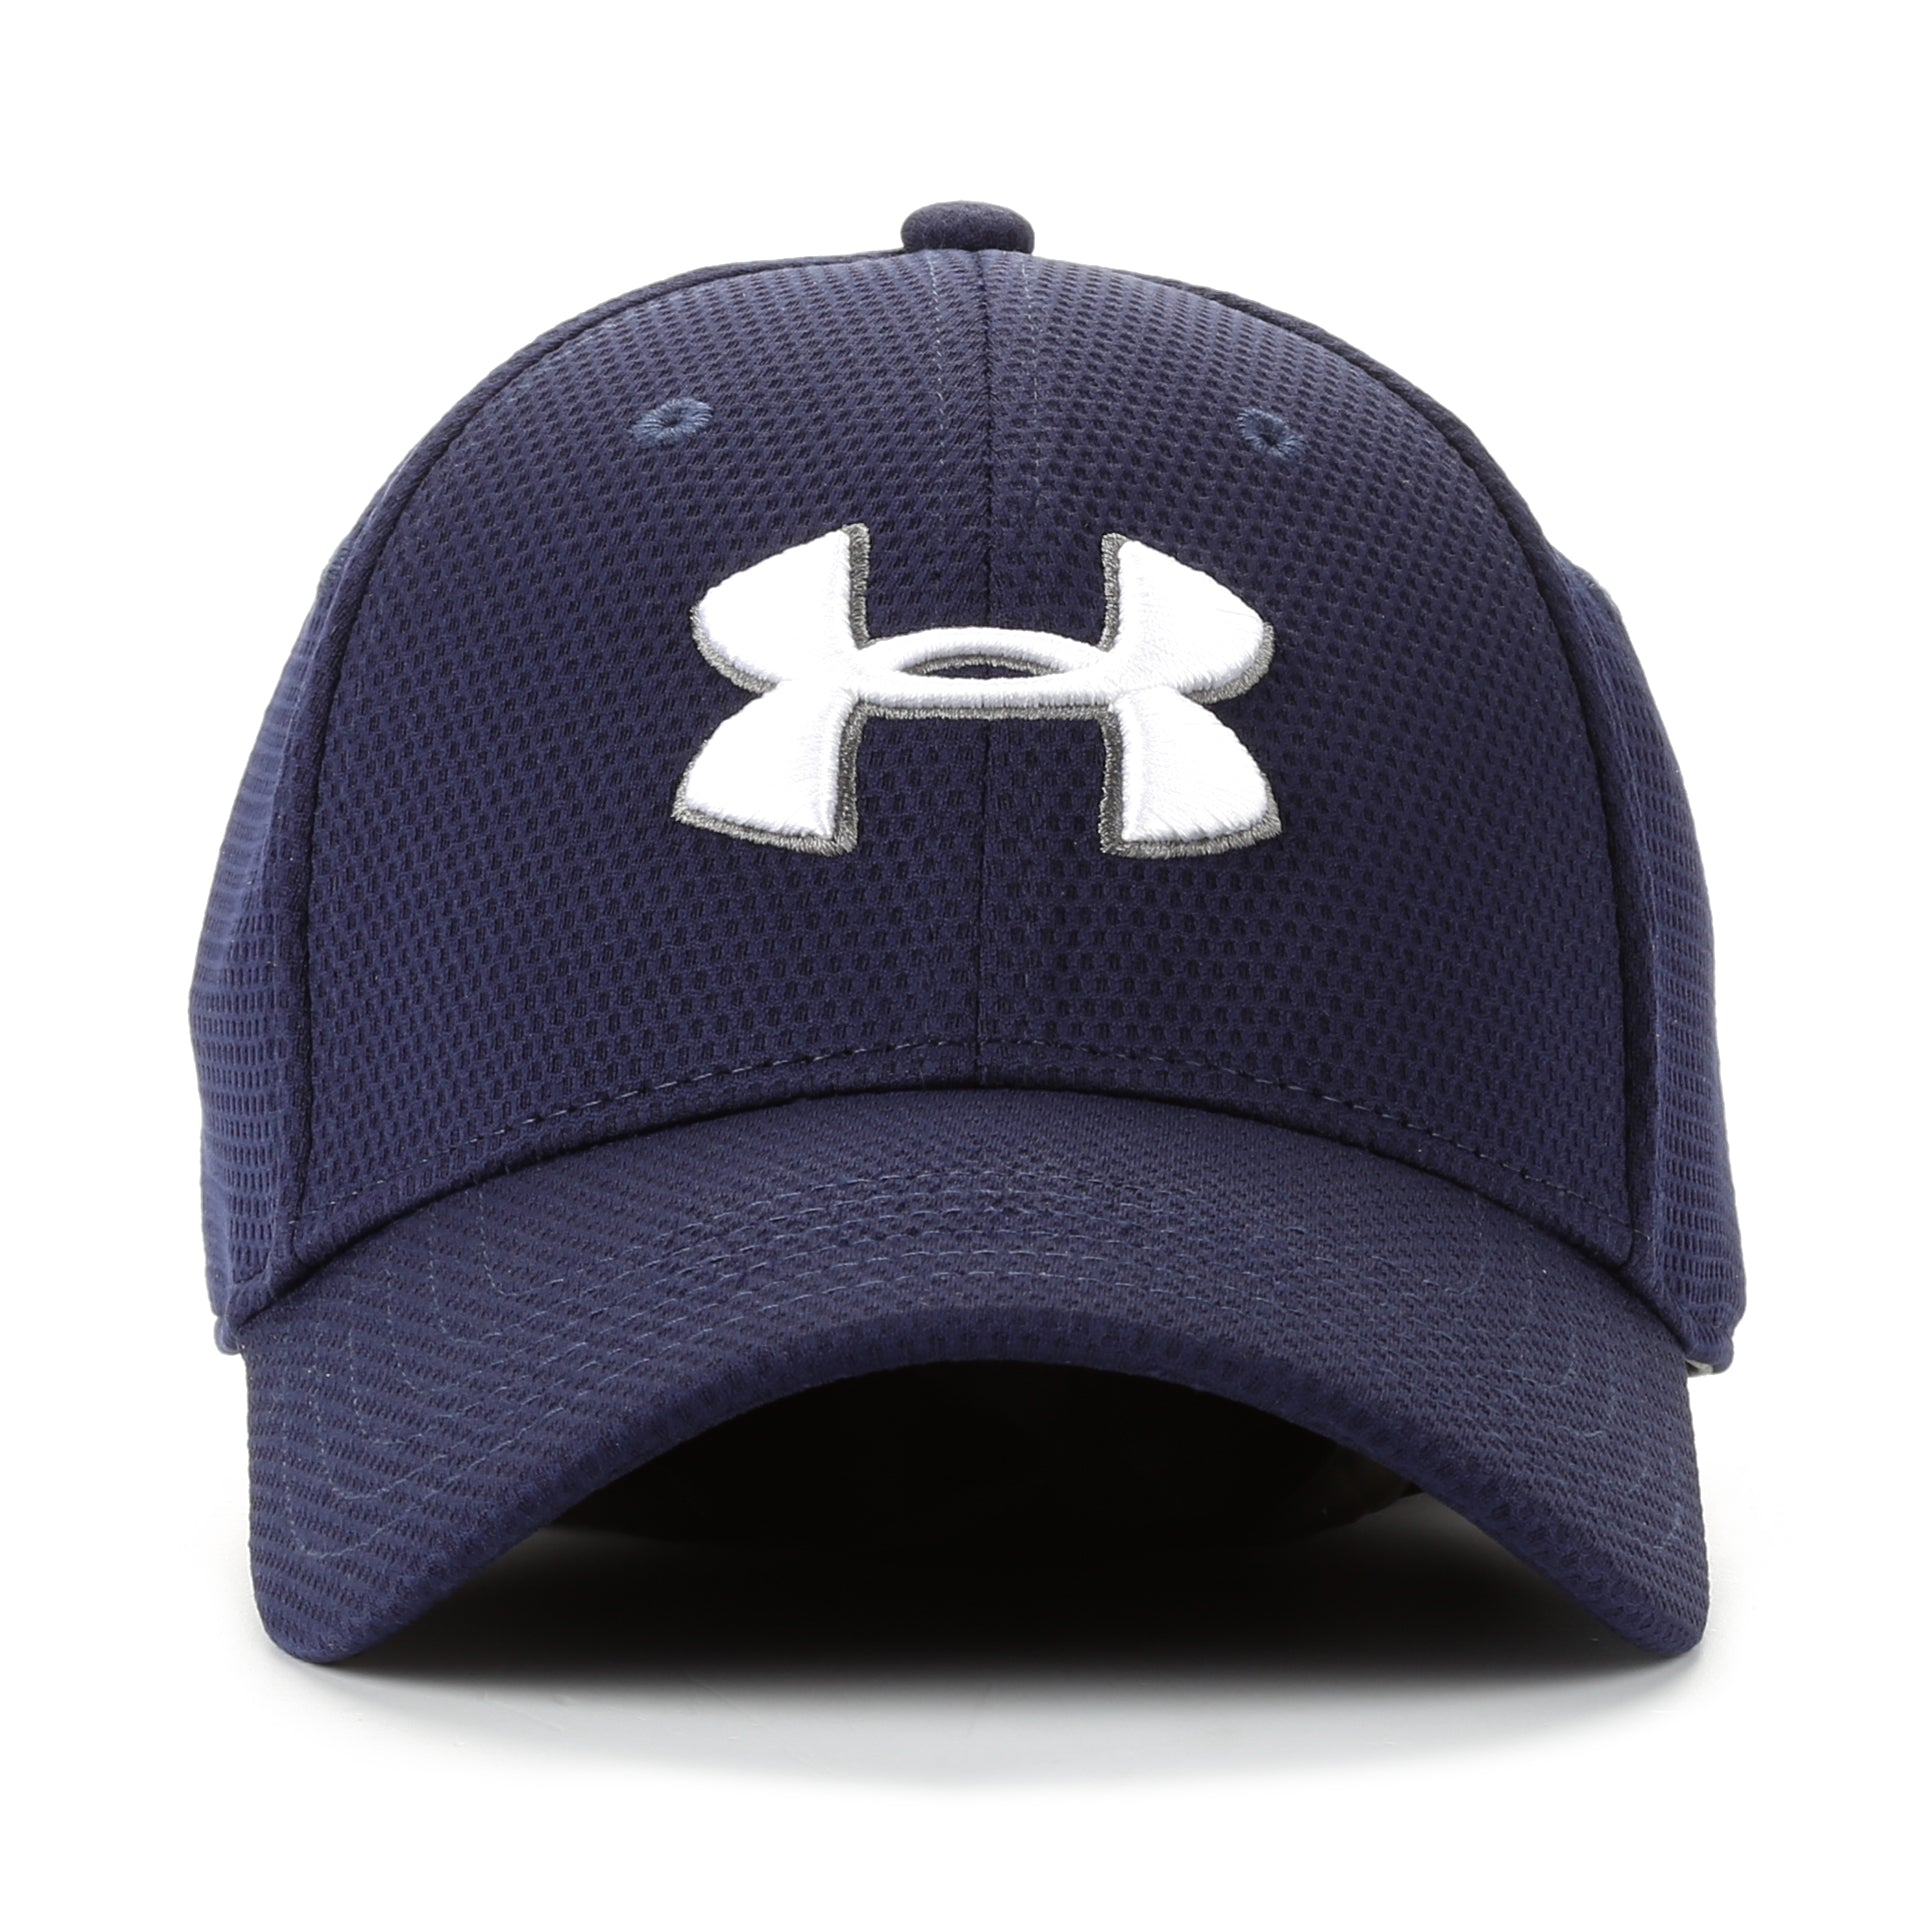 Under Armour Blitzing II Stretch Fit Hat - Navy White - New Star 31ac57c10ff